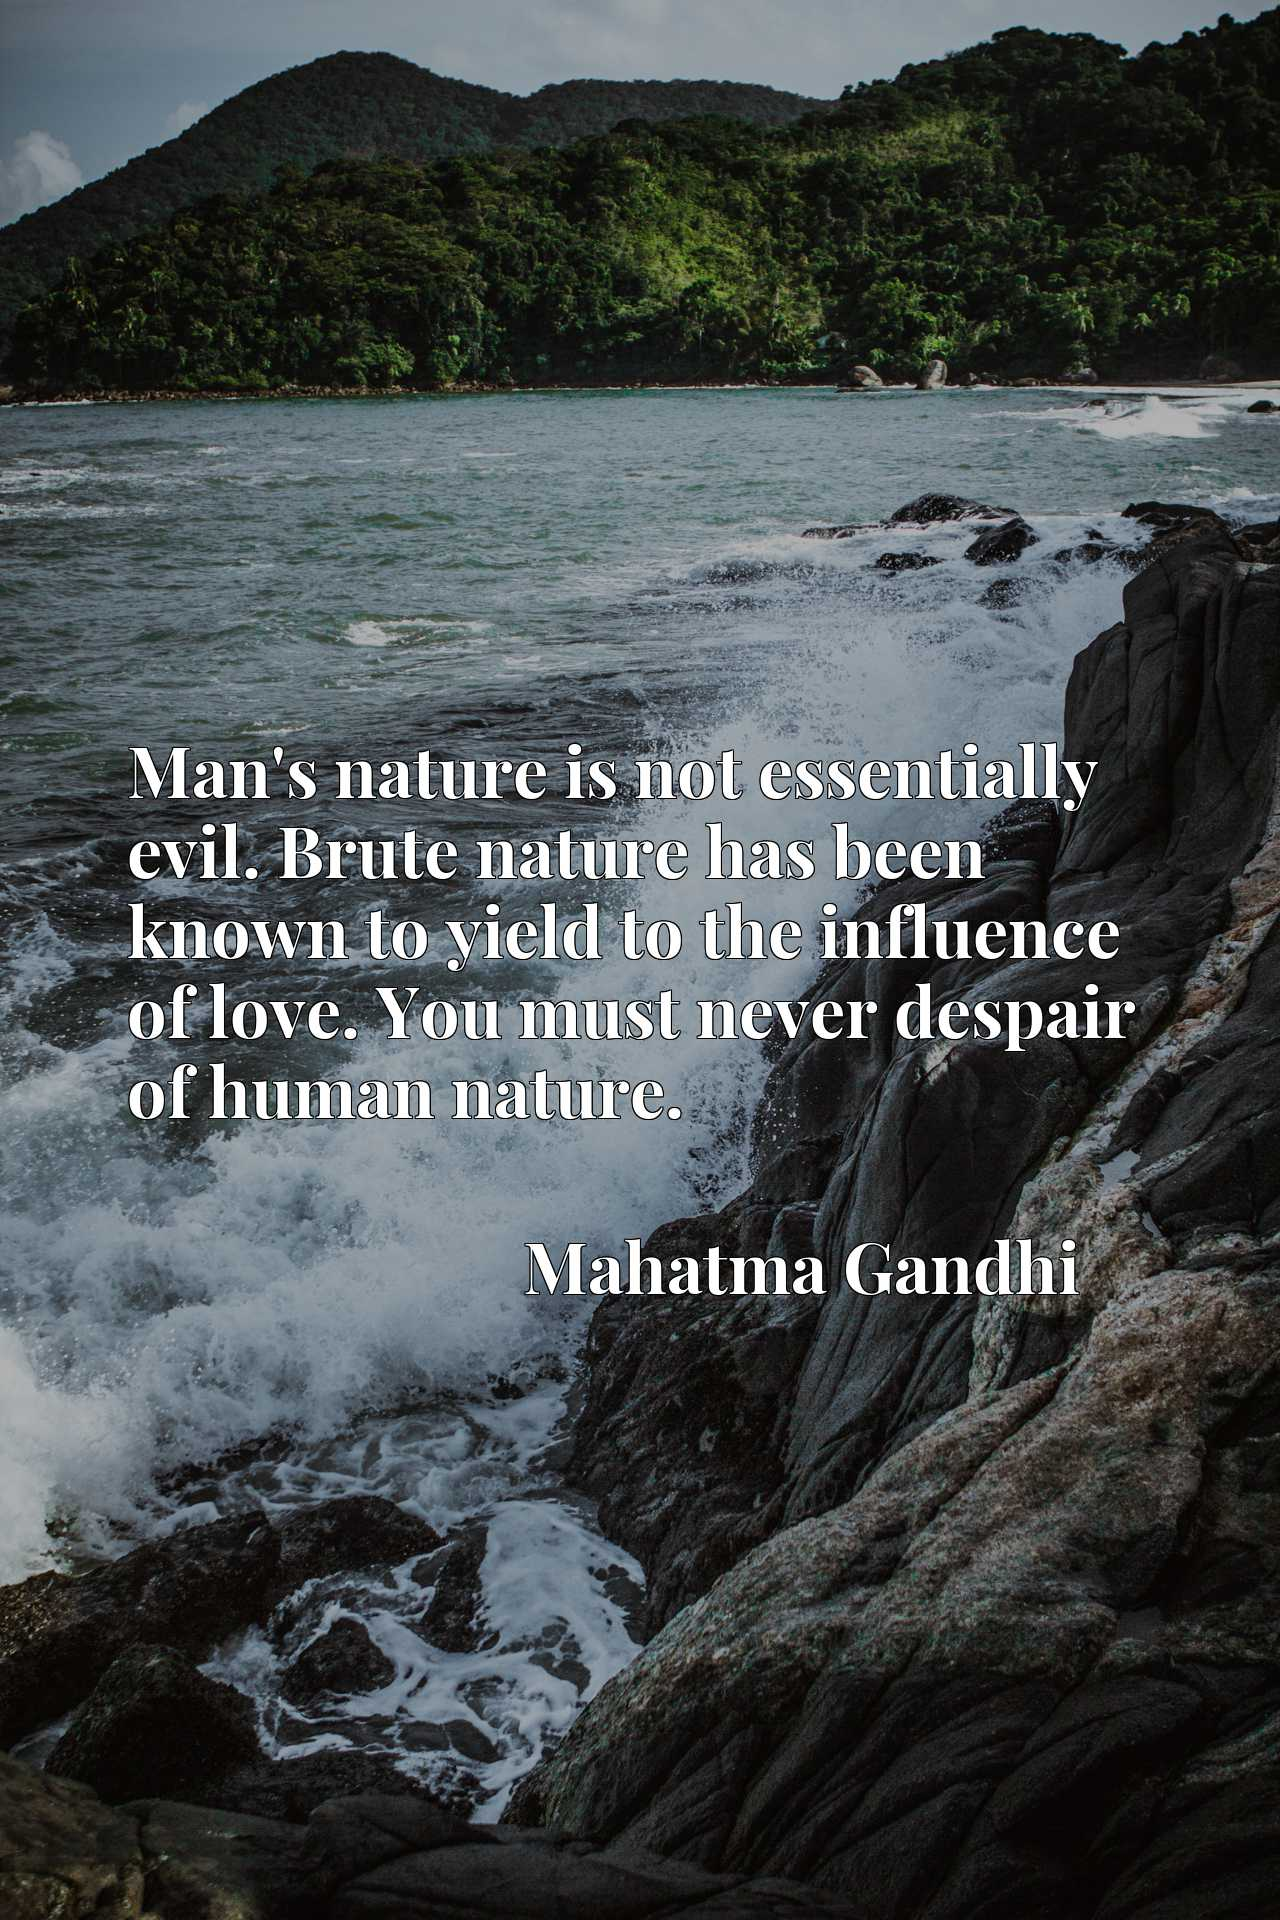 Quote Picture :Man's nature is not essentially evil. Brute nature has been known to yield to the influence of love. You must never despair of human nature.